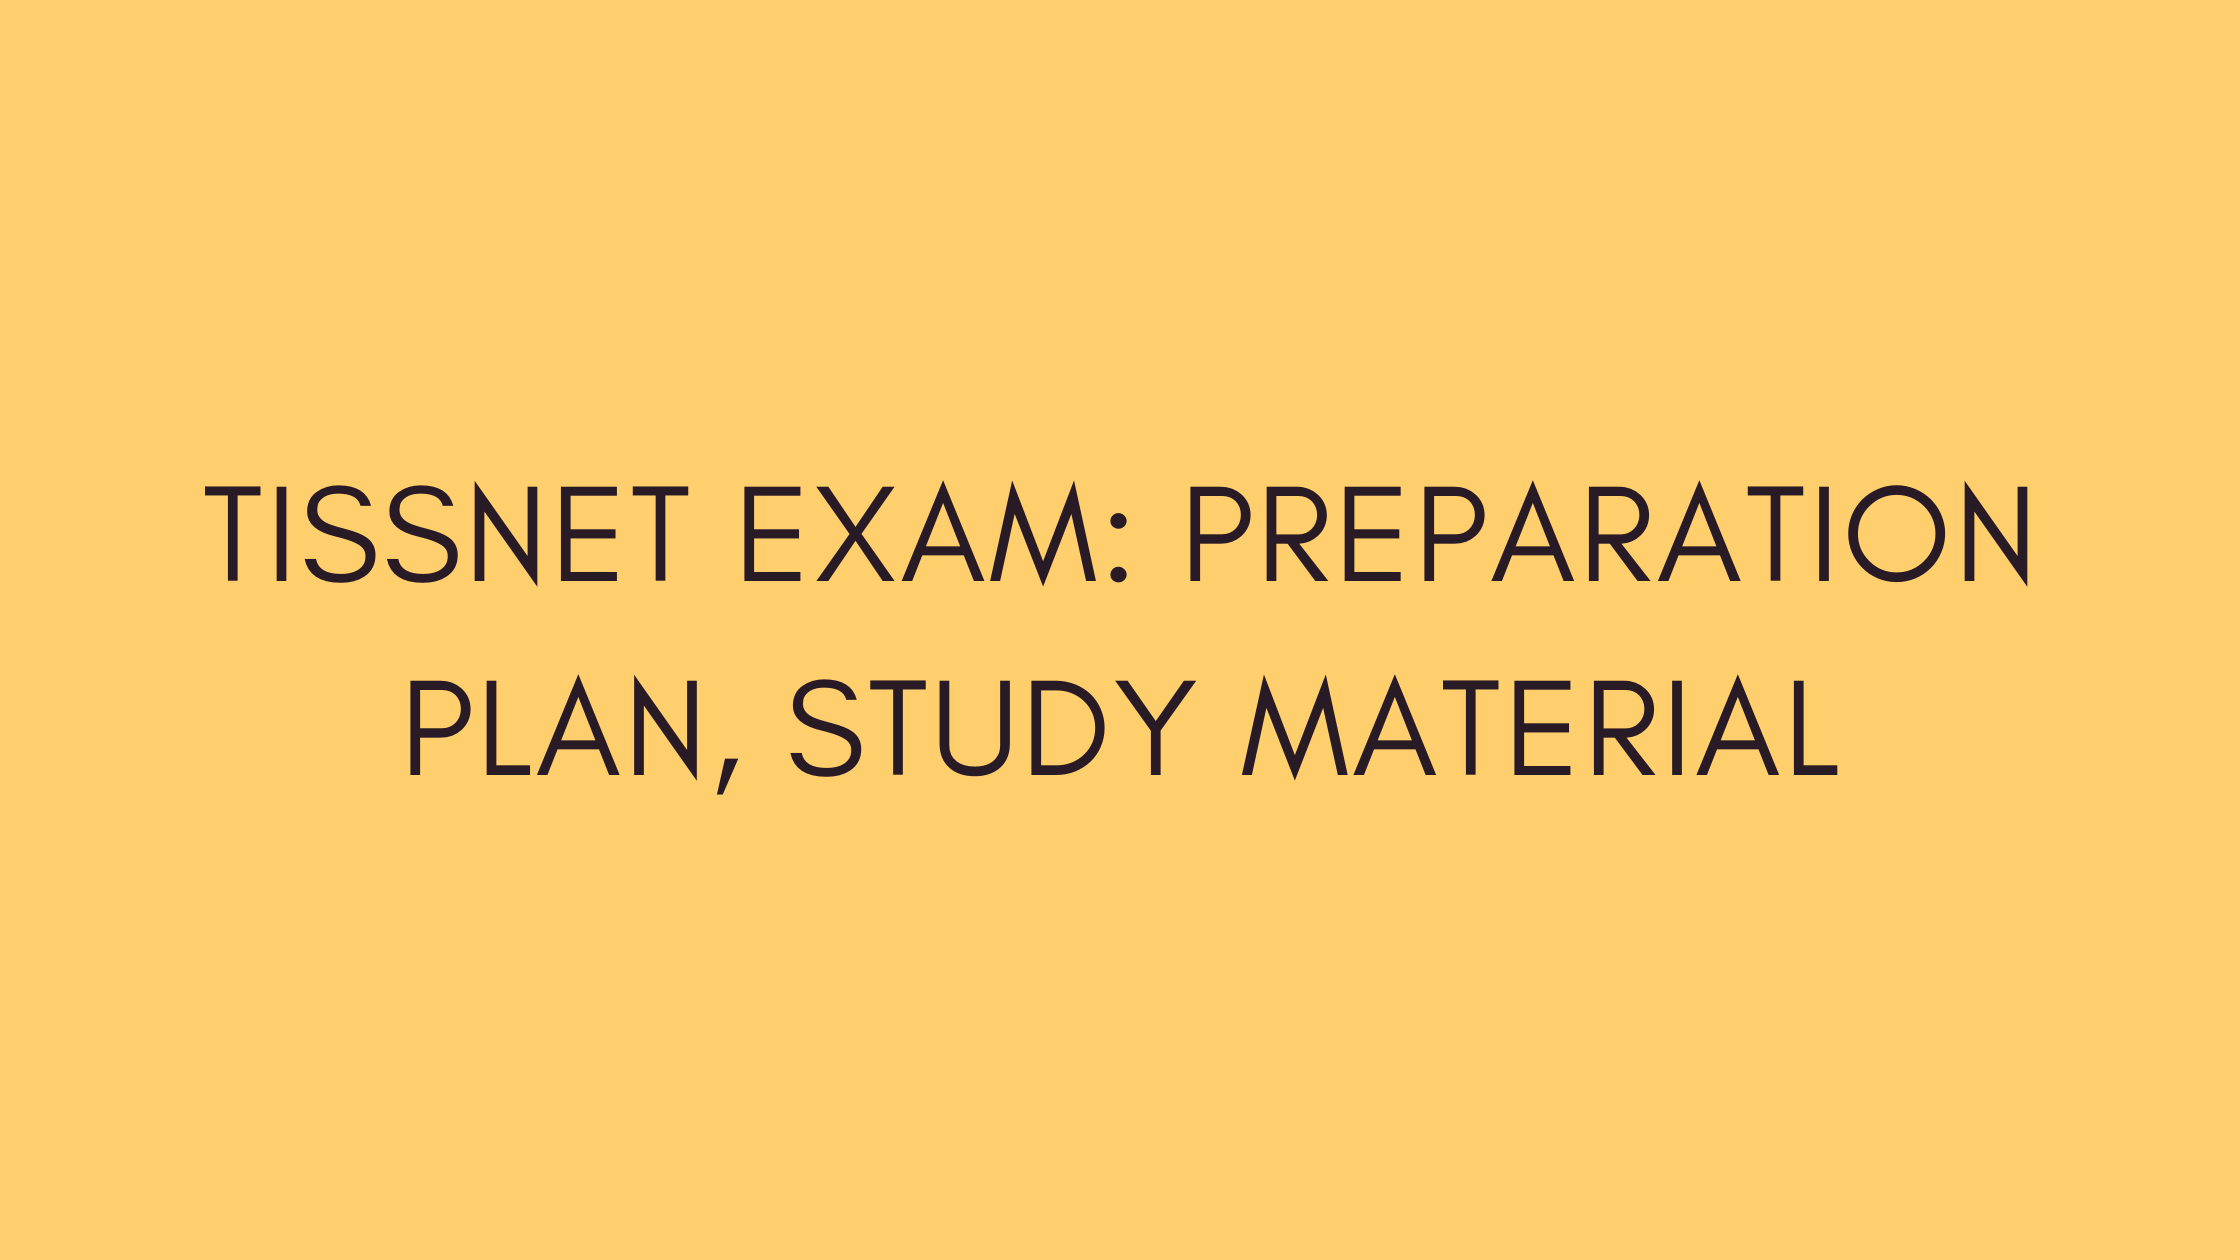 Preparation Plan For TISSNET Exam 2022, TISSNET Study Material